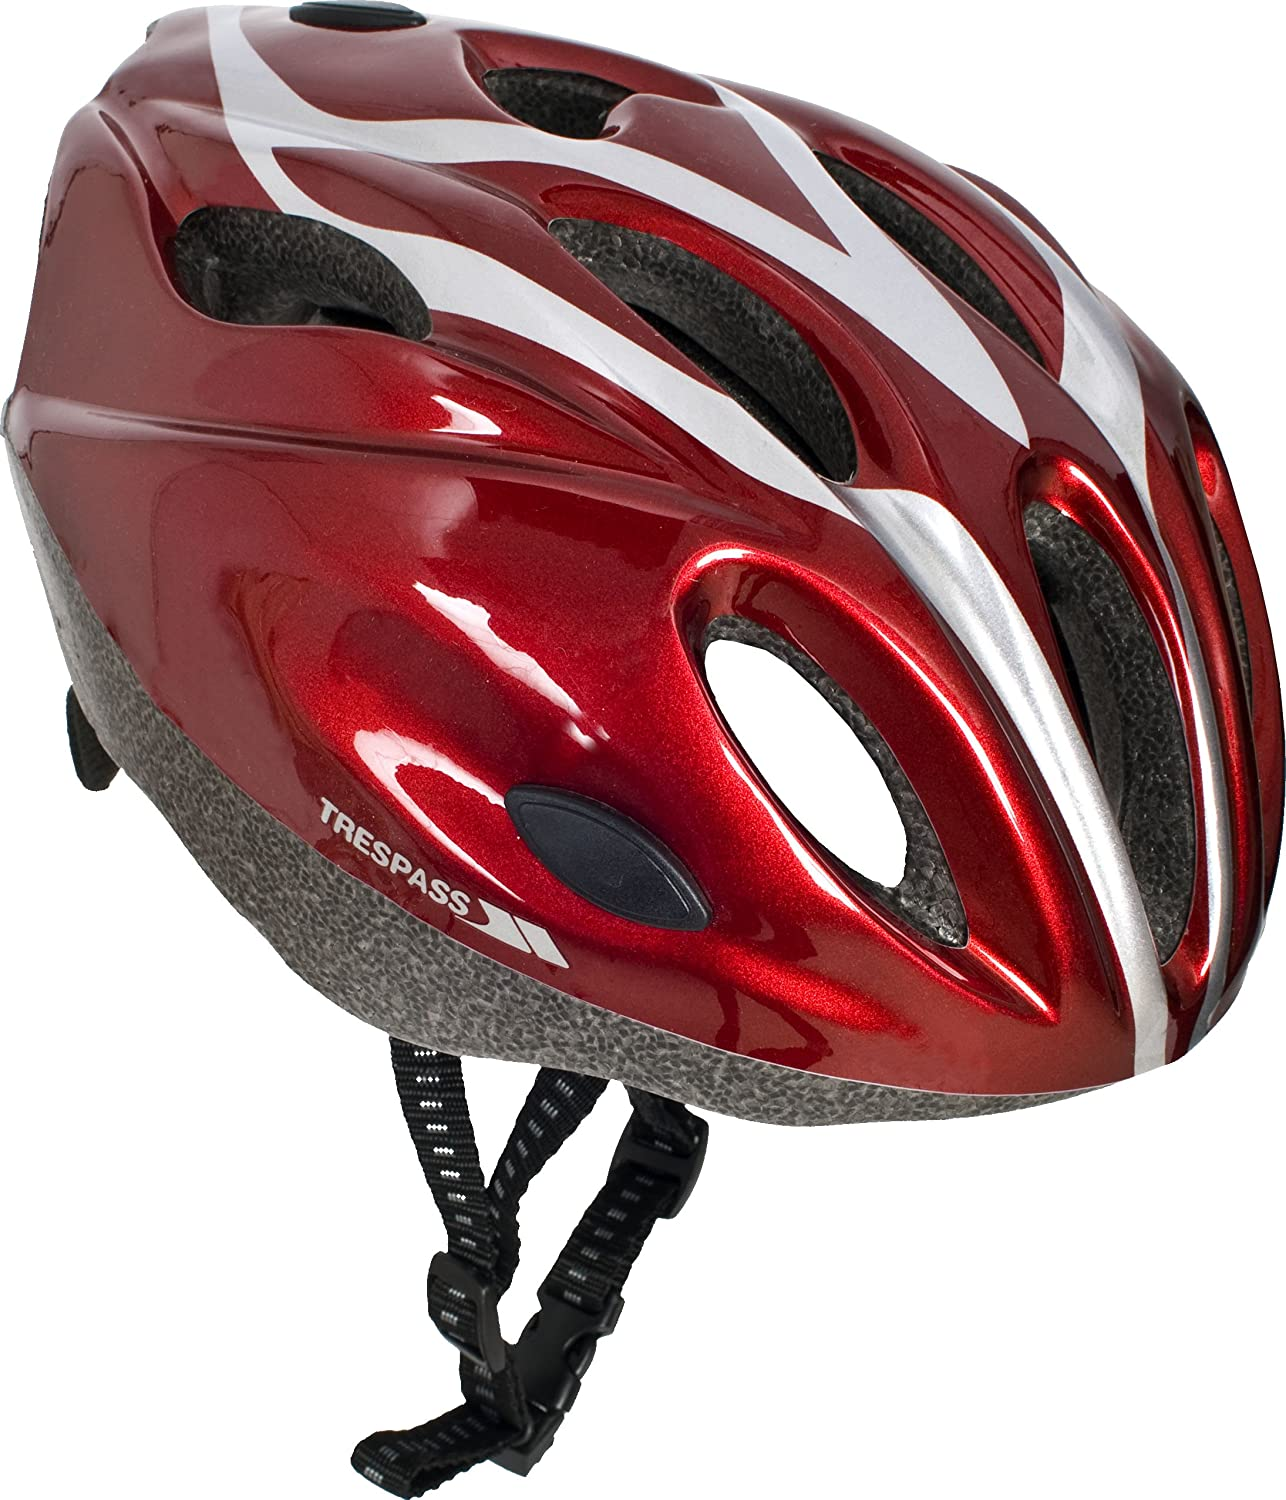 Trespass TANKY - Casco de ciclismo